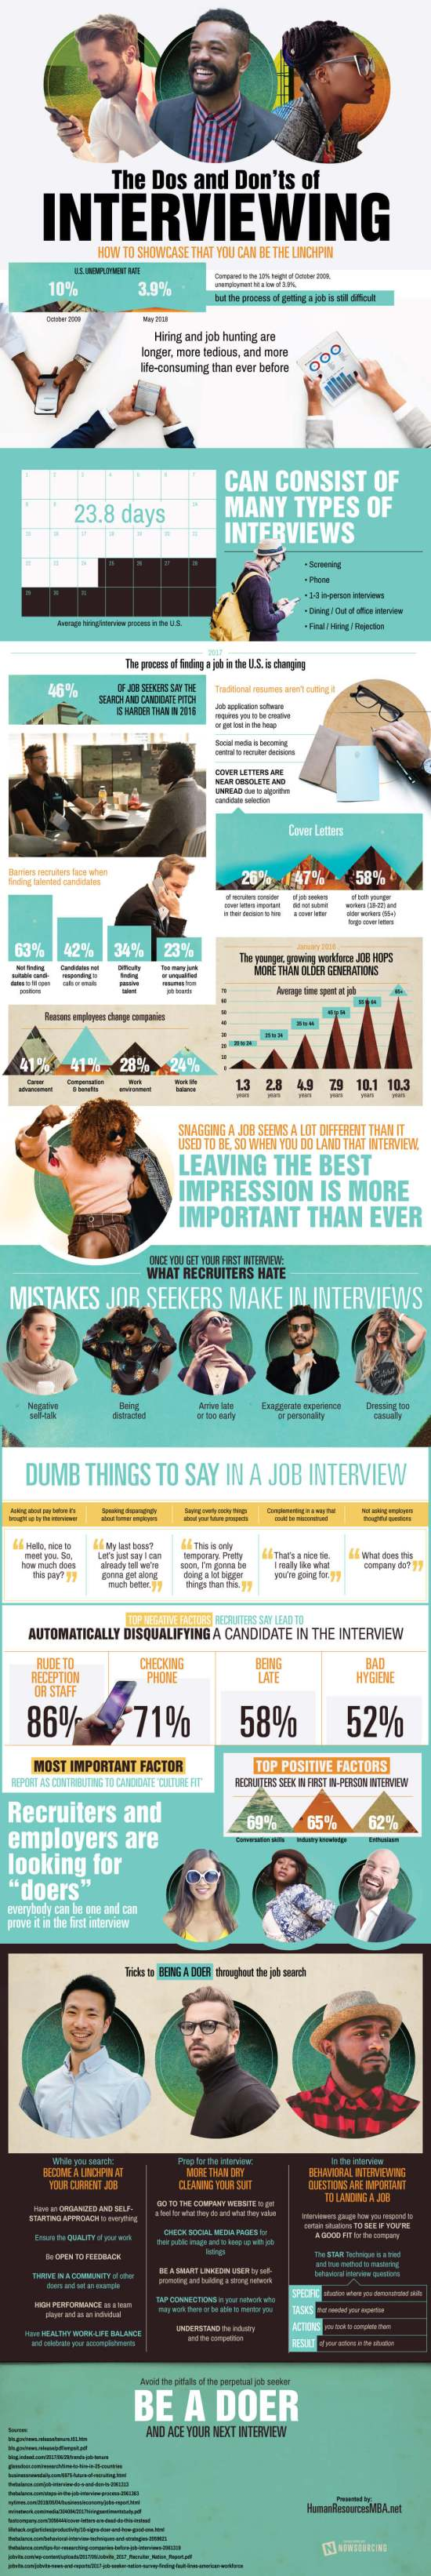 How To Ace Your Next Job Interview [Infographic] 2